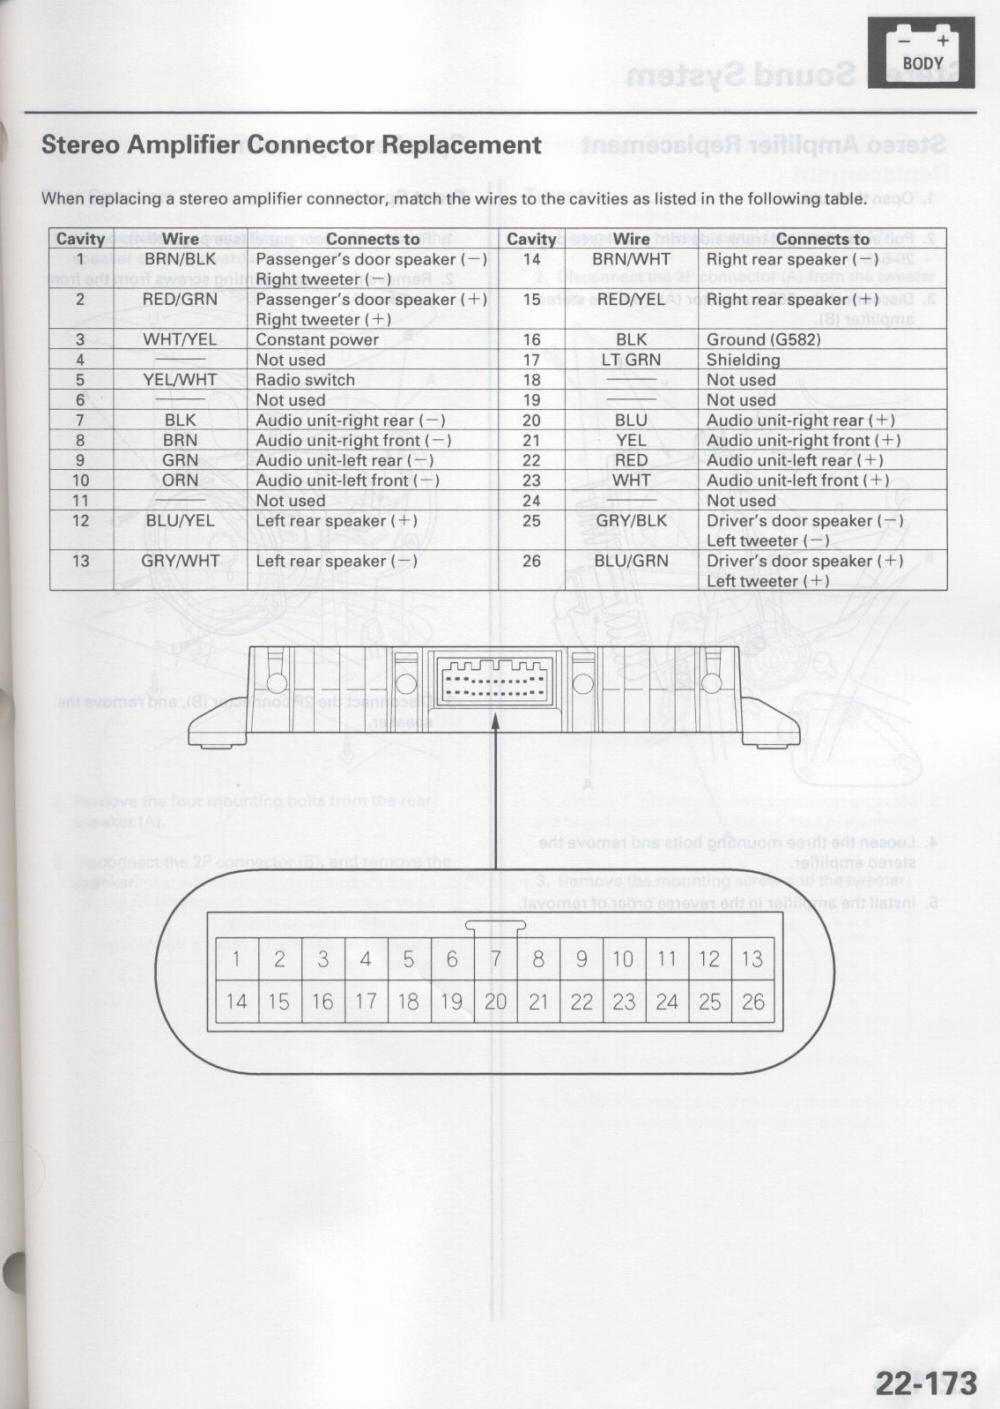 2003 Acura El Wiring Diagram - Acura Tl Car Stereo Amplifier Wiring Diagram  Harness - 2003